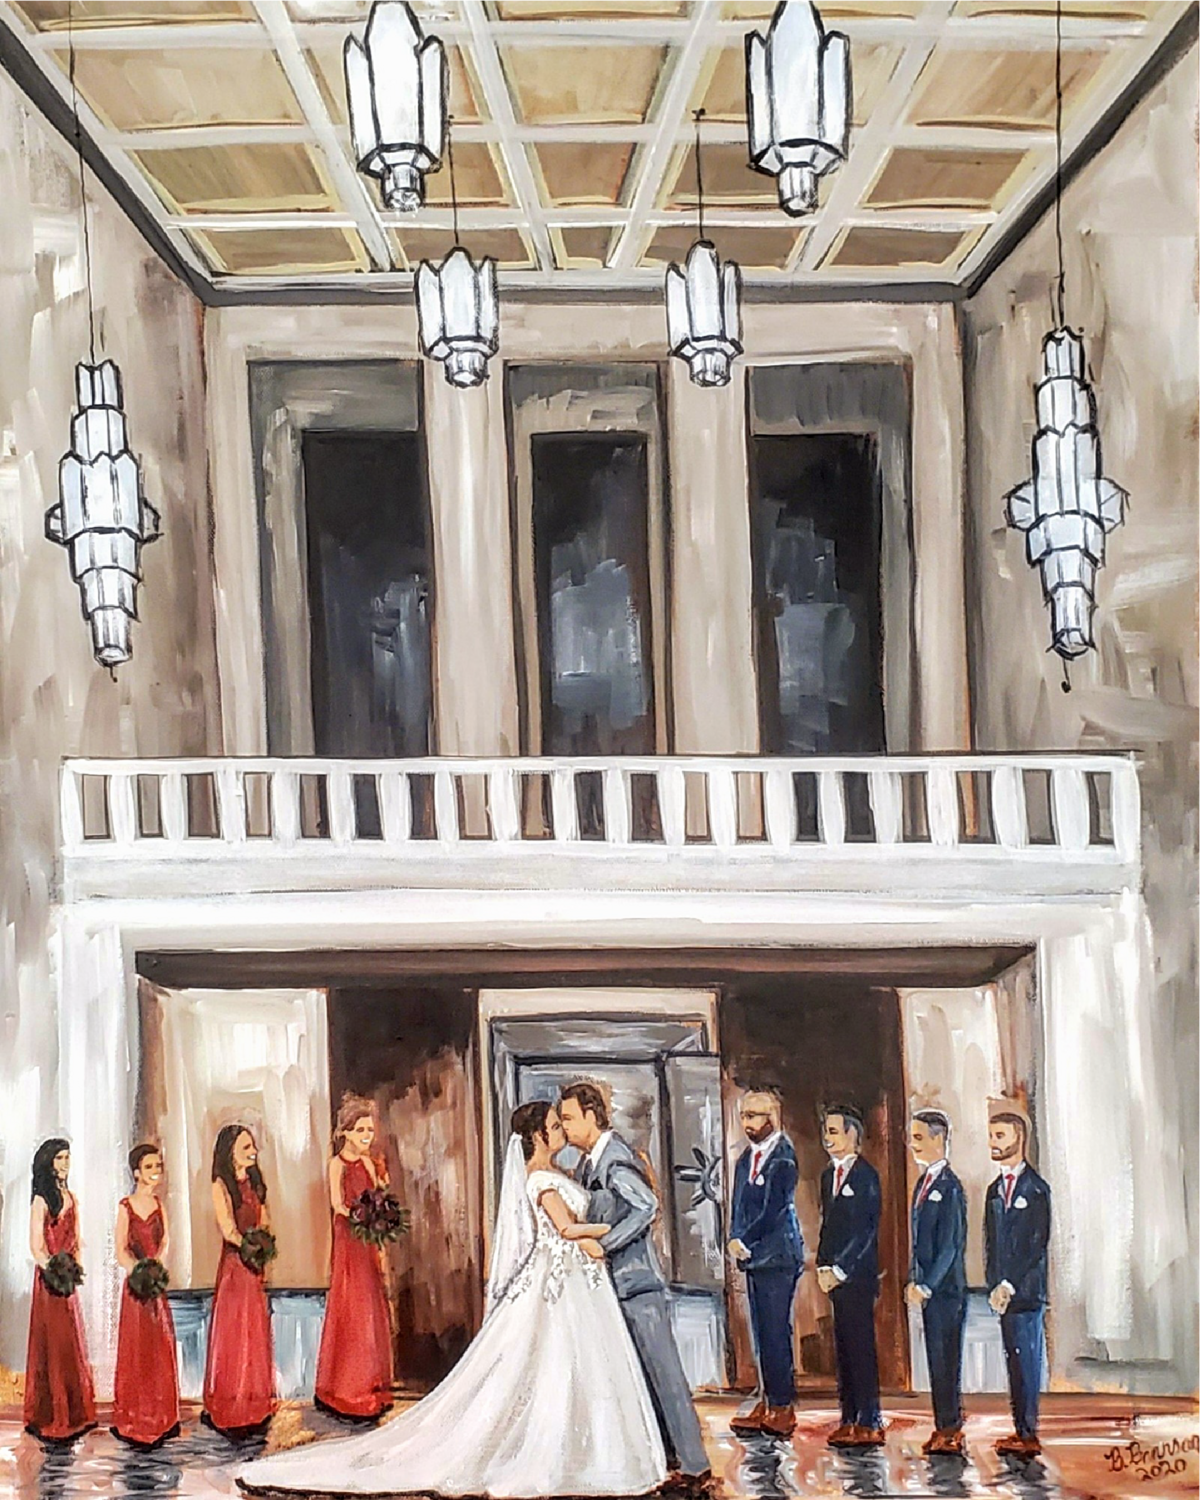 Live wedding painting of a bride and groom's first kiss during their wedding ceremony at the Grande Hall in Dayton Ohio